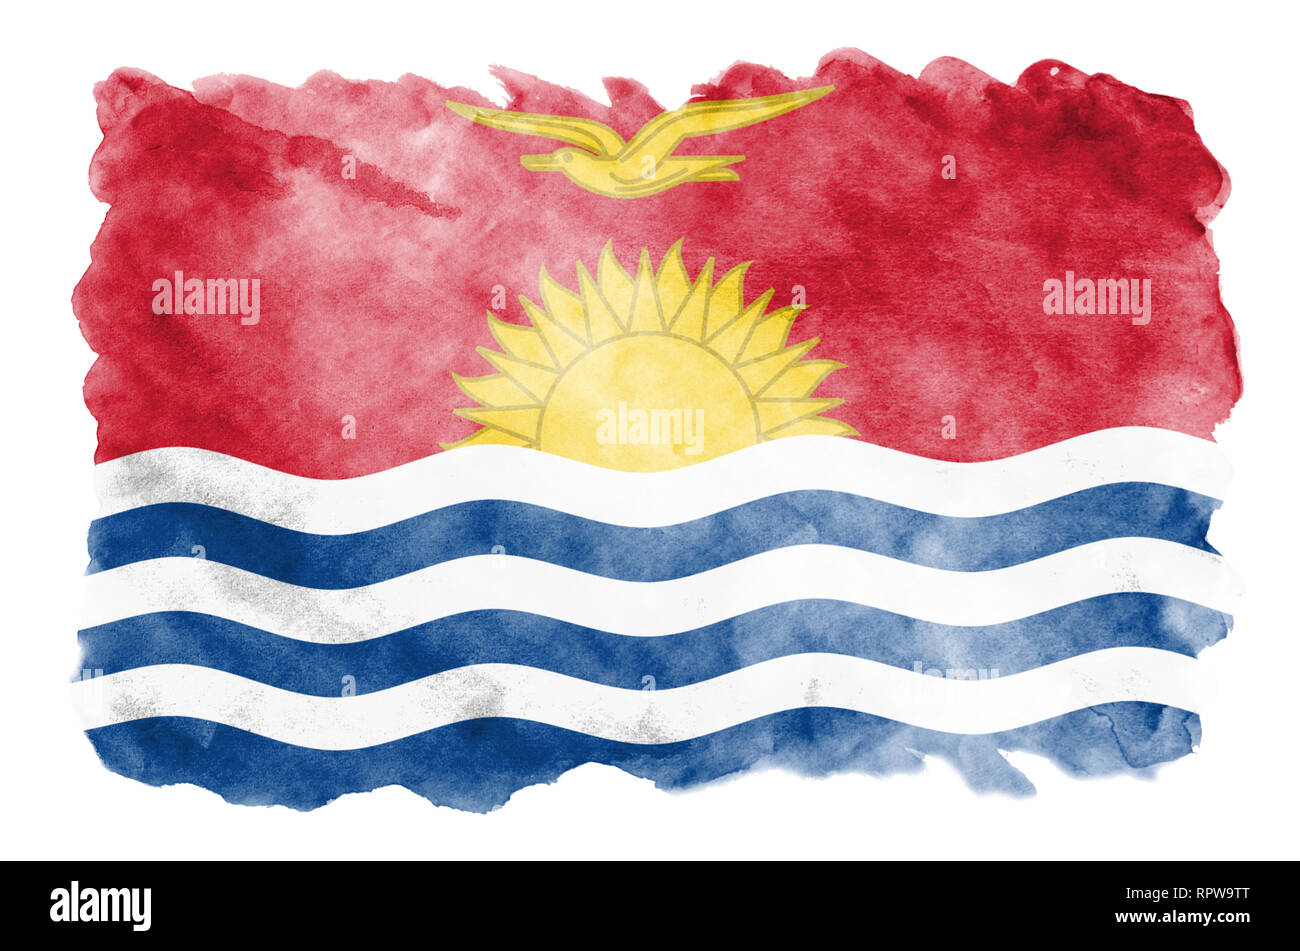 Kiribati flag  is depicted in liquid watercolor style isolated on white background. Careless paint shading with image of national flag. Independence D - Stock Image